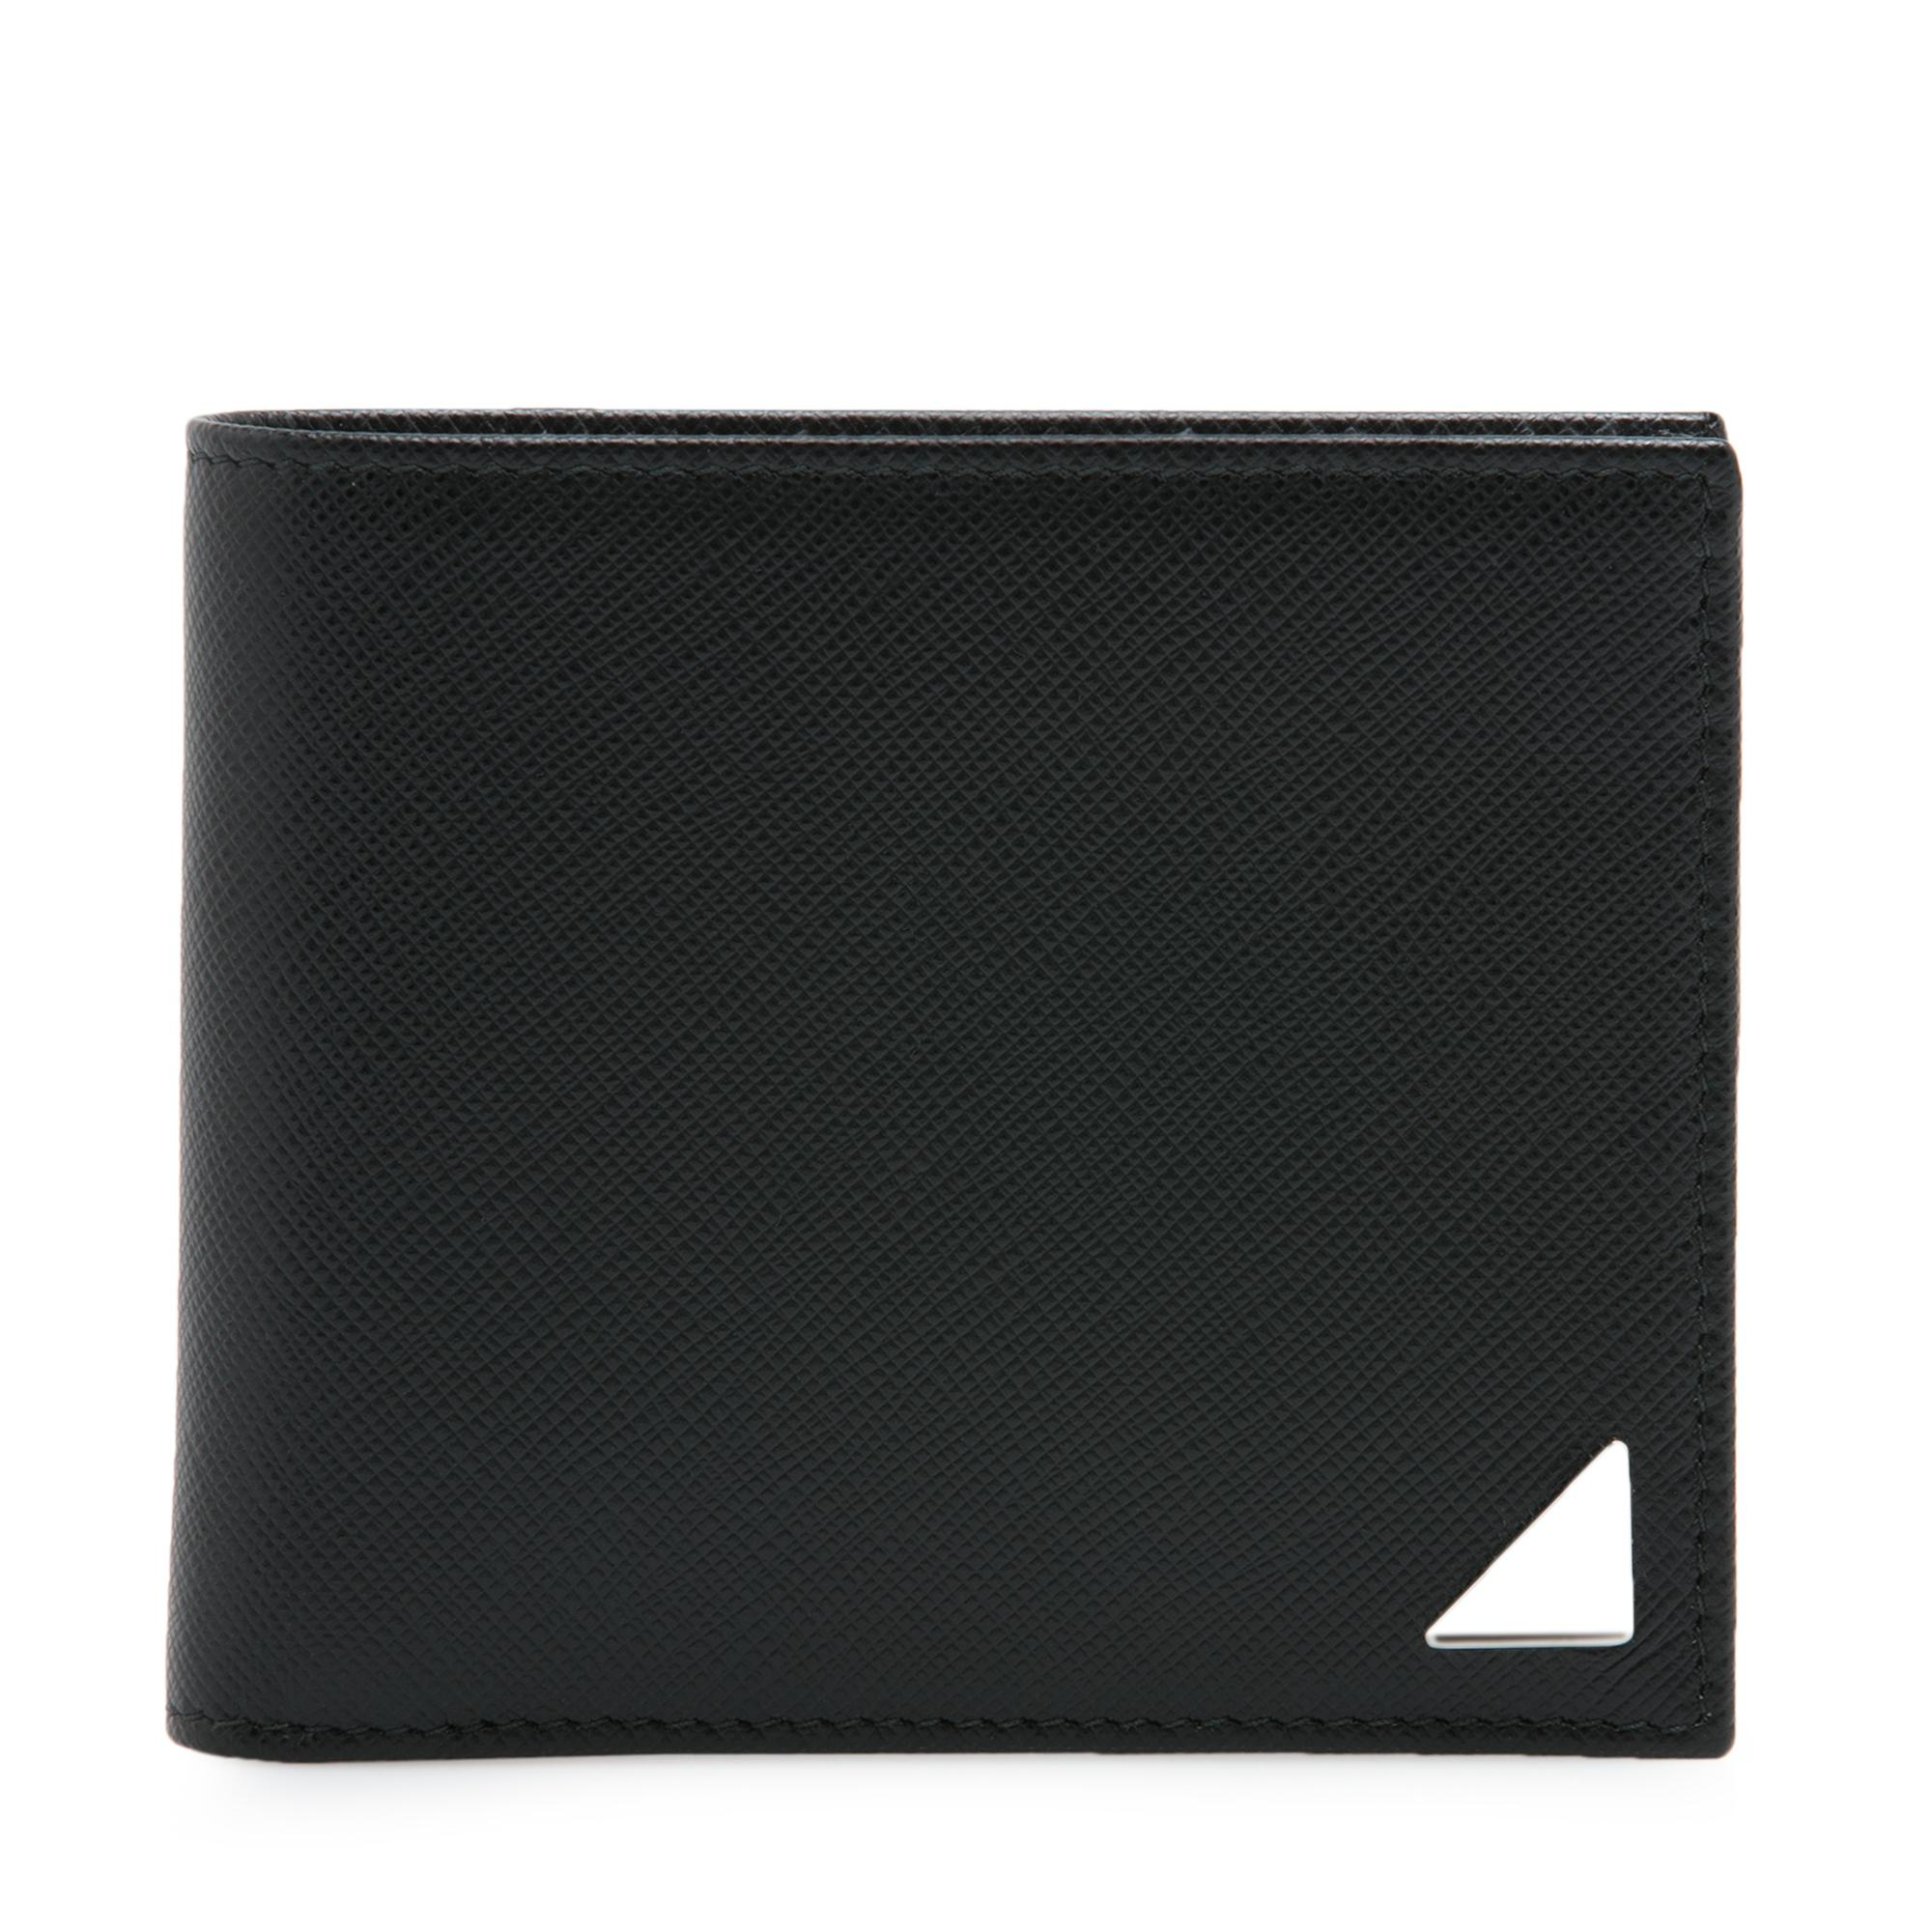 Saffiano leather logo wallet